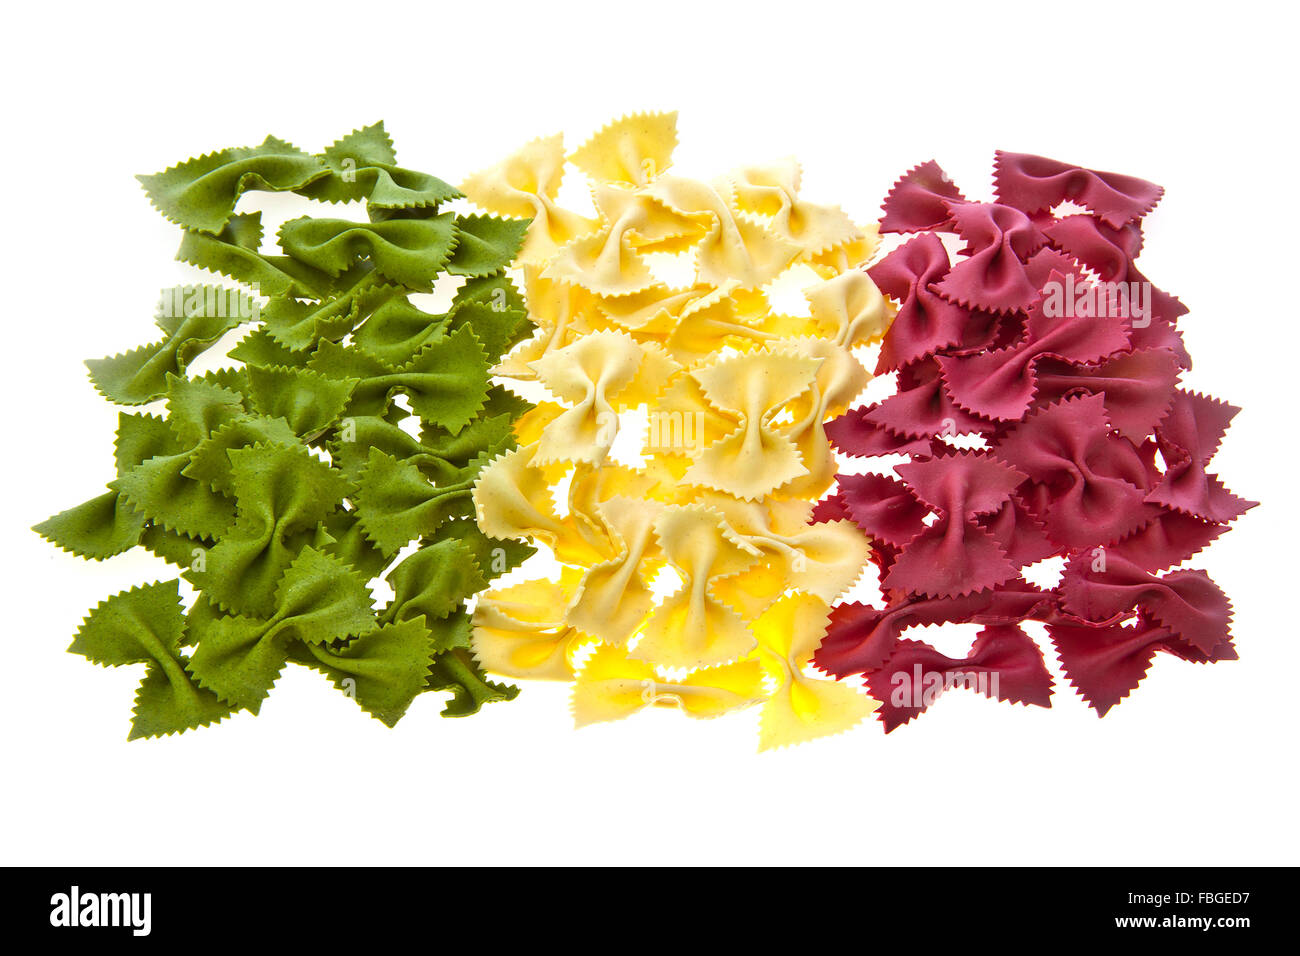 Dried pasta bows in the shape and colours of the Italian Flag on white background - Stock Image